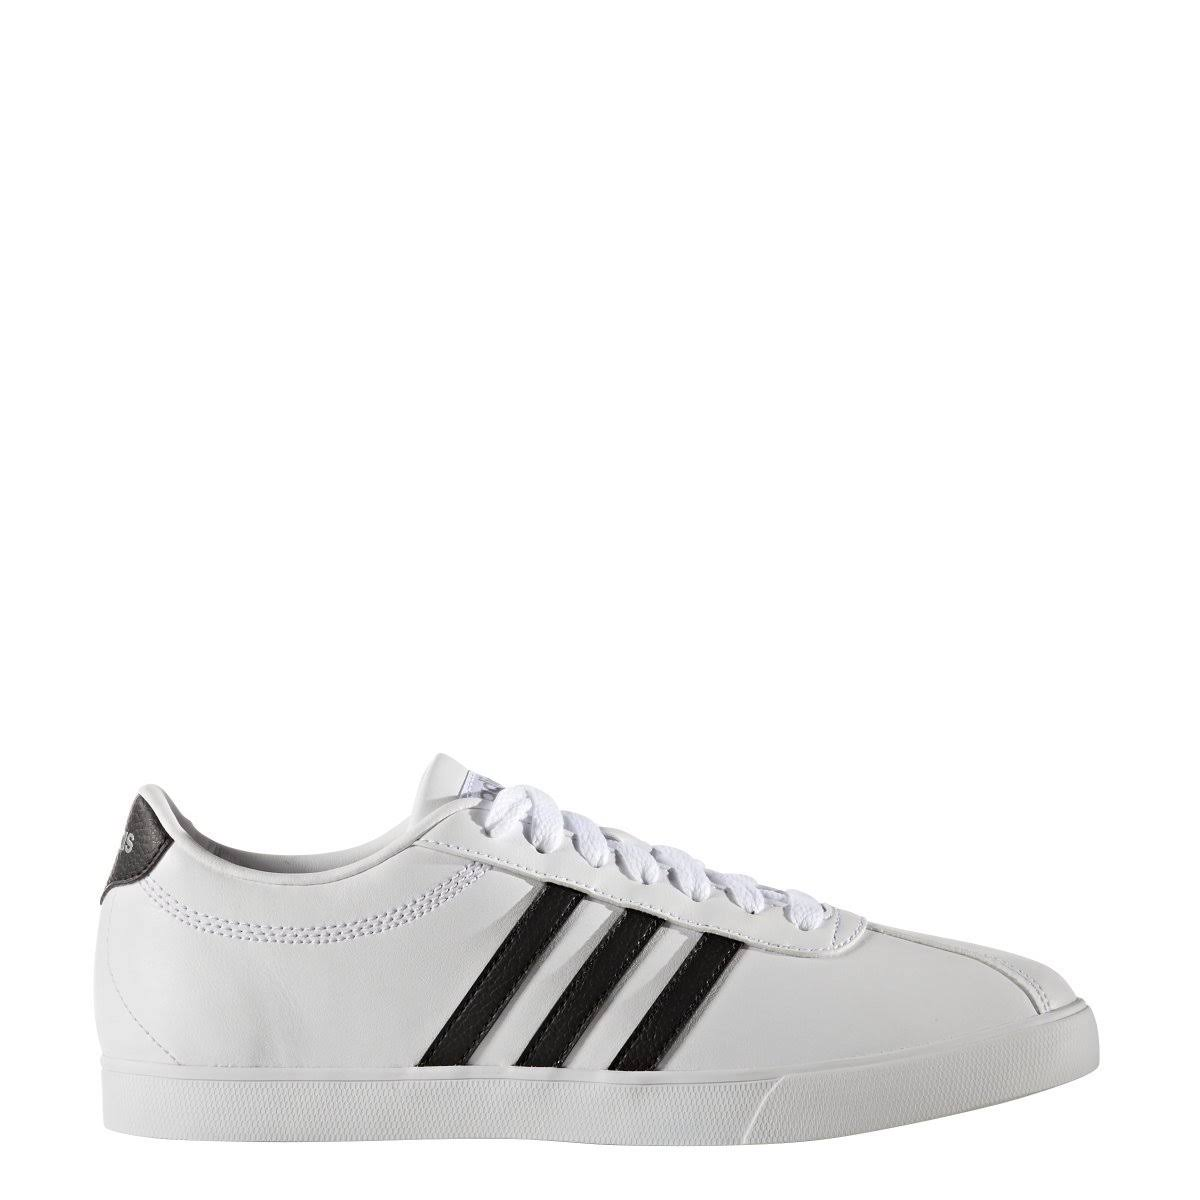 Mate Para Black Silver Core Originals Courtset White De Fashion Adidas Zapatillas Ftwr Deporte Mujer wq7AUYa